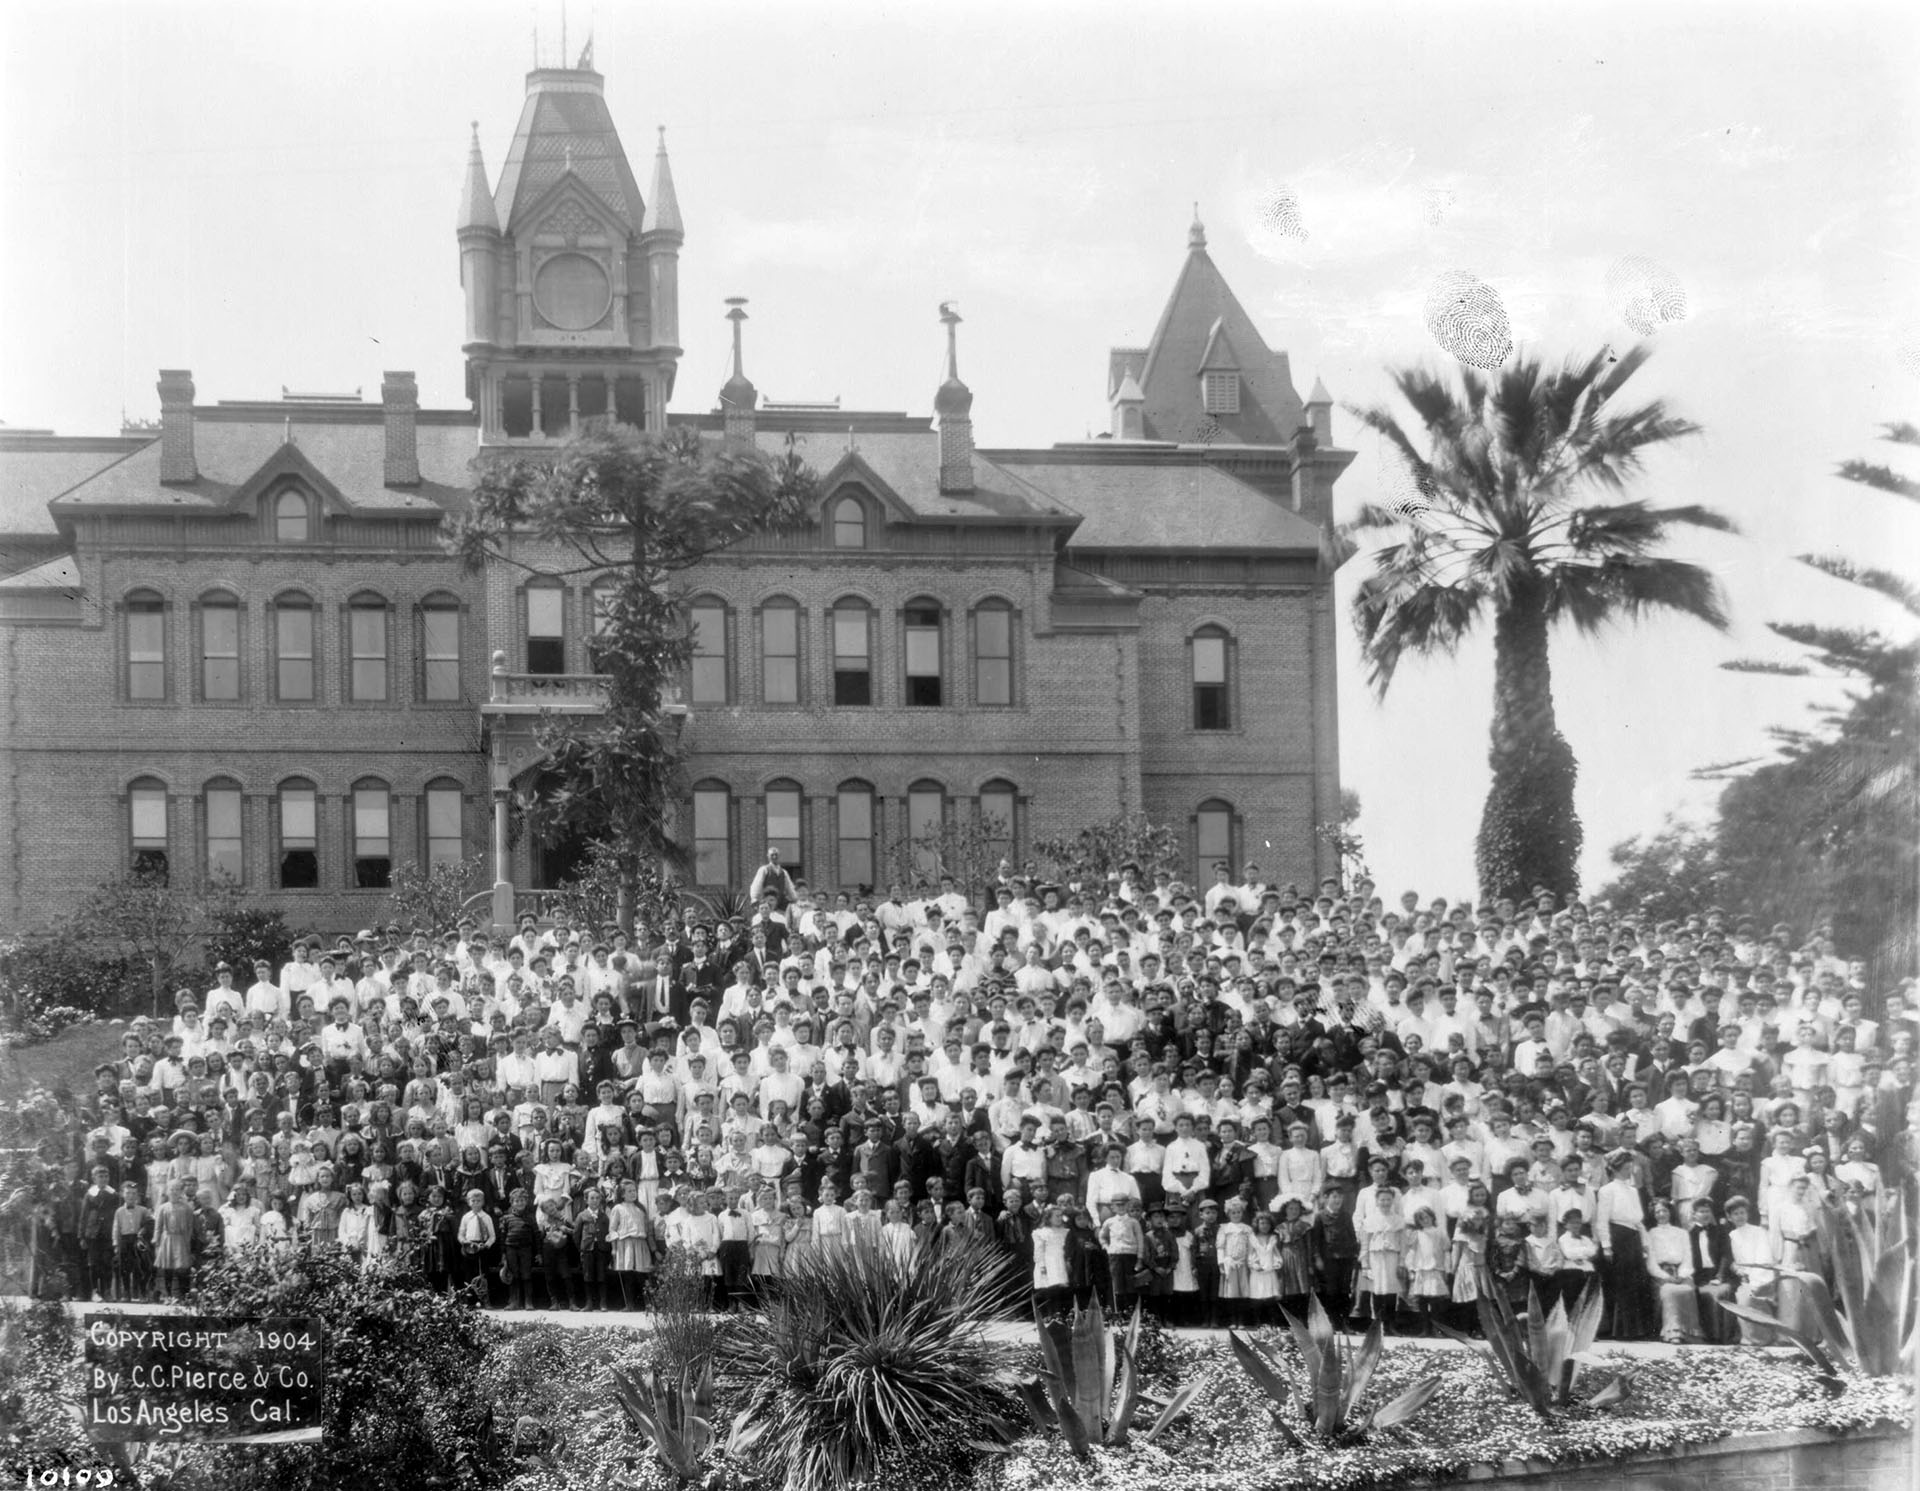 Students and faculty assemble outside the State Normal School in 1904